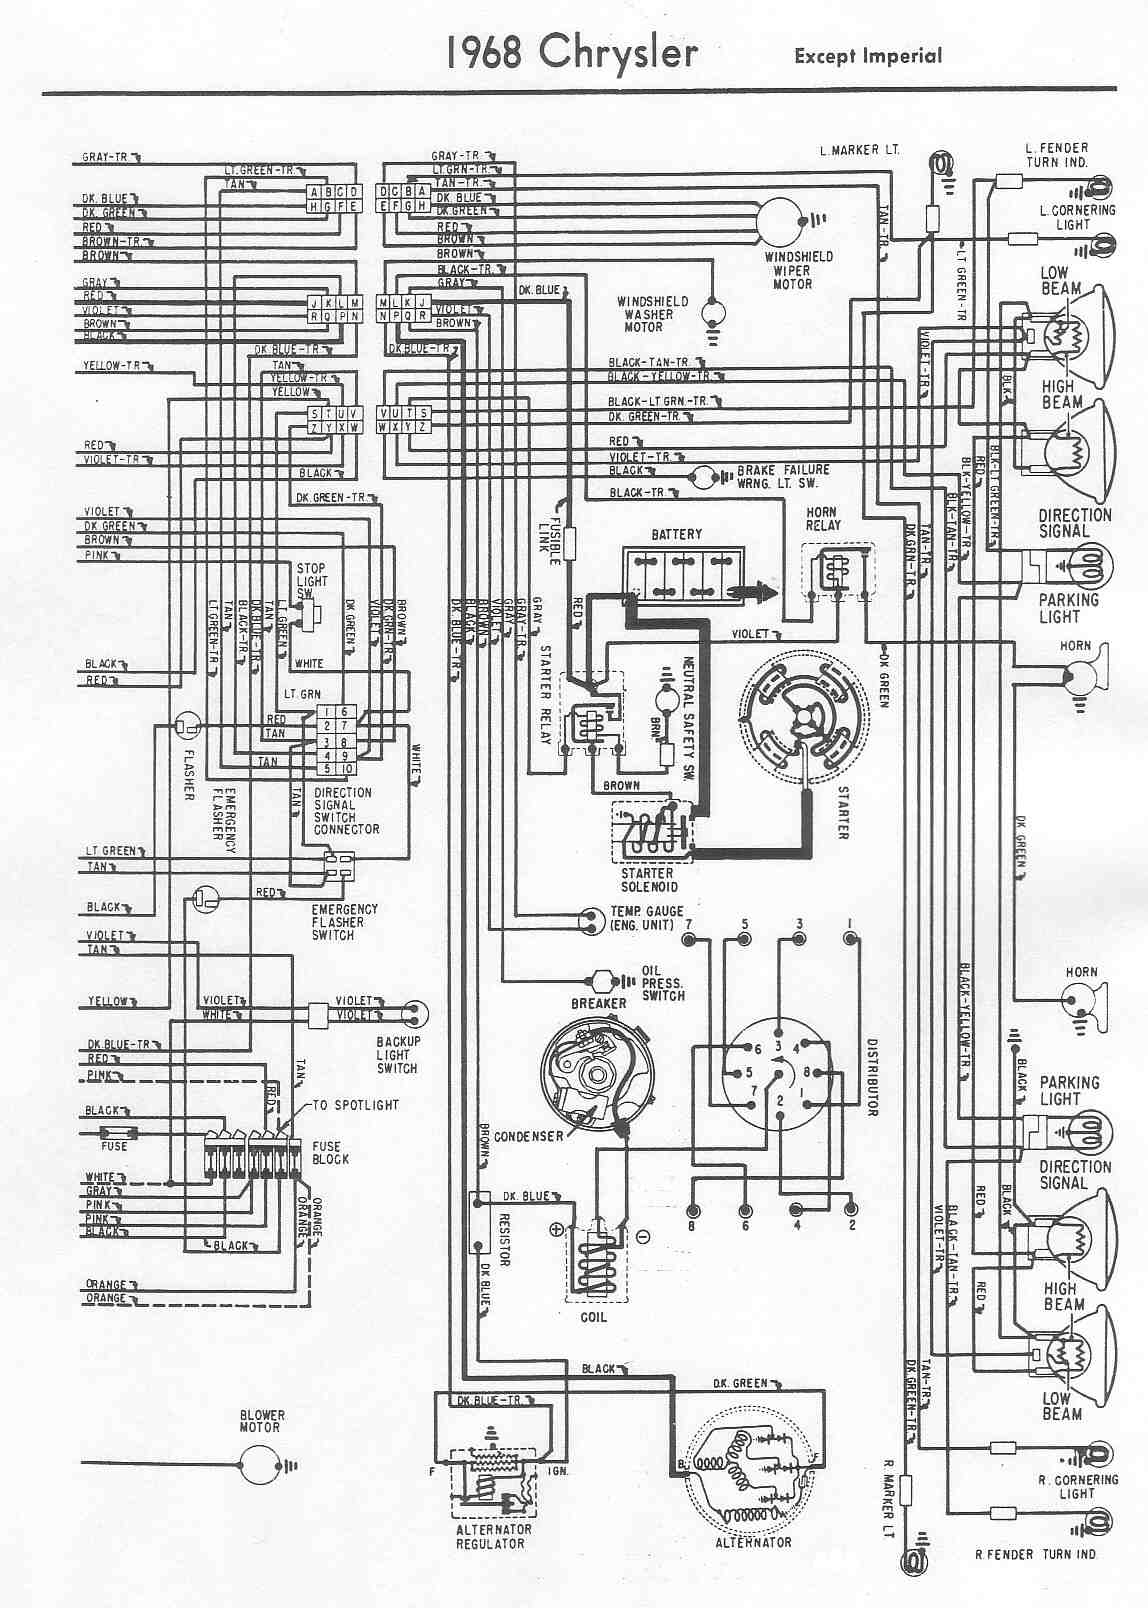 wiring schematic for 1970 gto wiring library 1966 gto wiper wiring diagram schematic trusted wiring diagram [ 1148 x 1608 Pixel ]